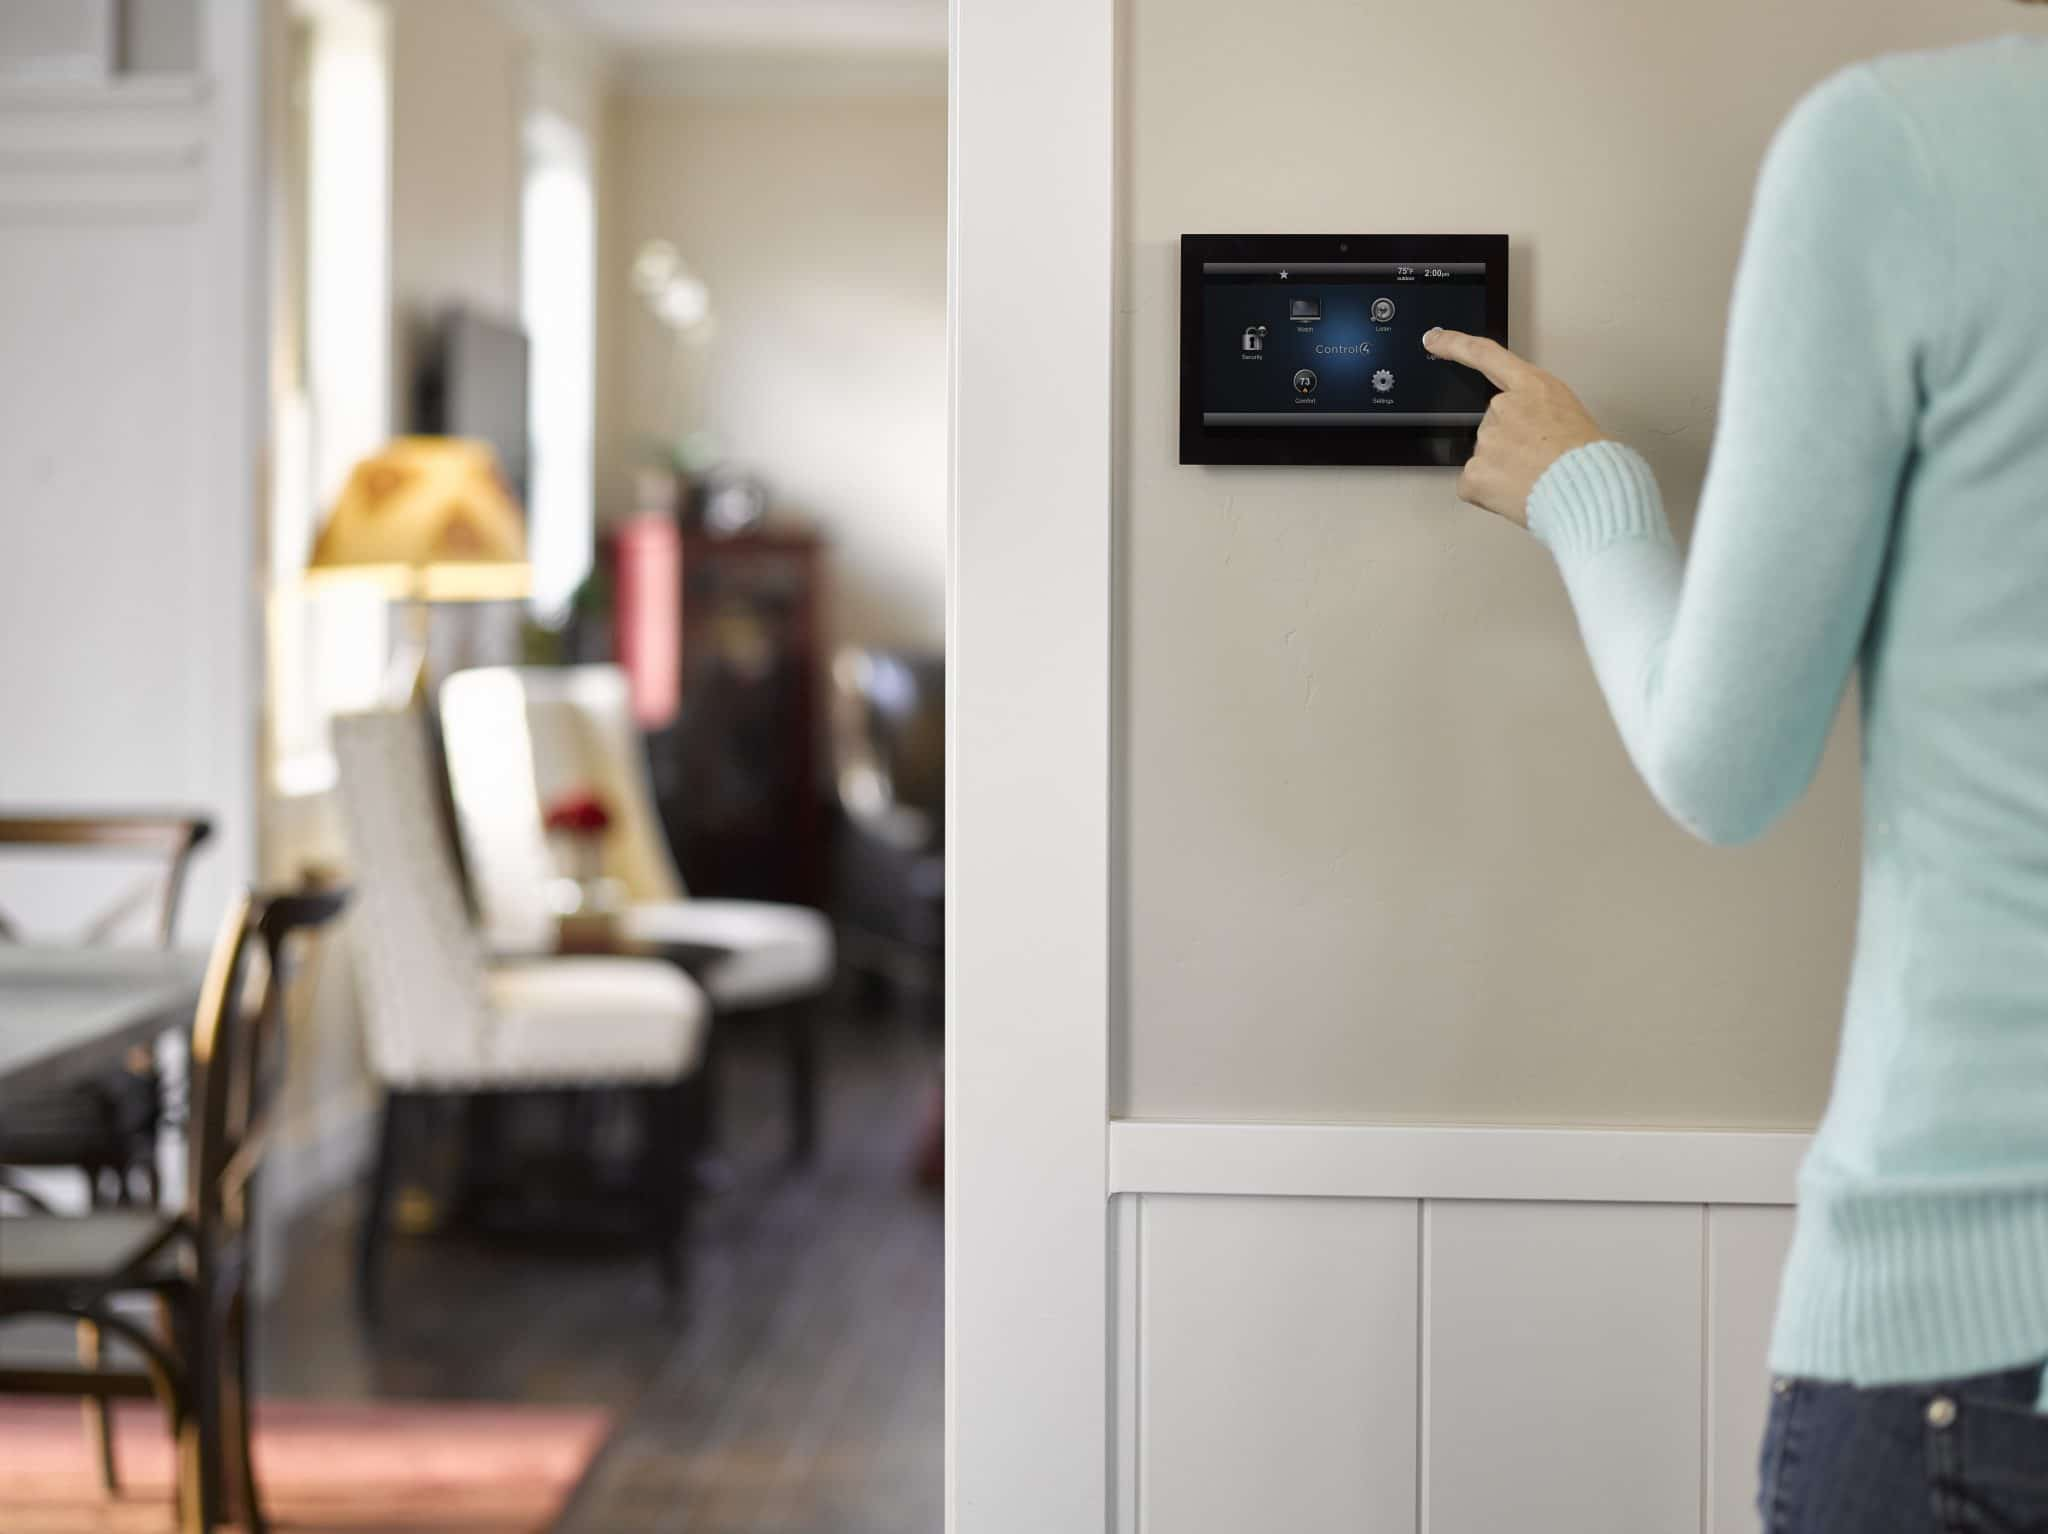 C4 in wall touch screen